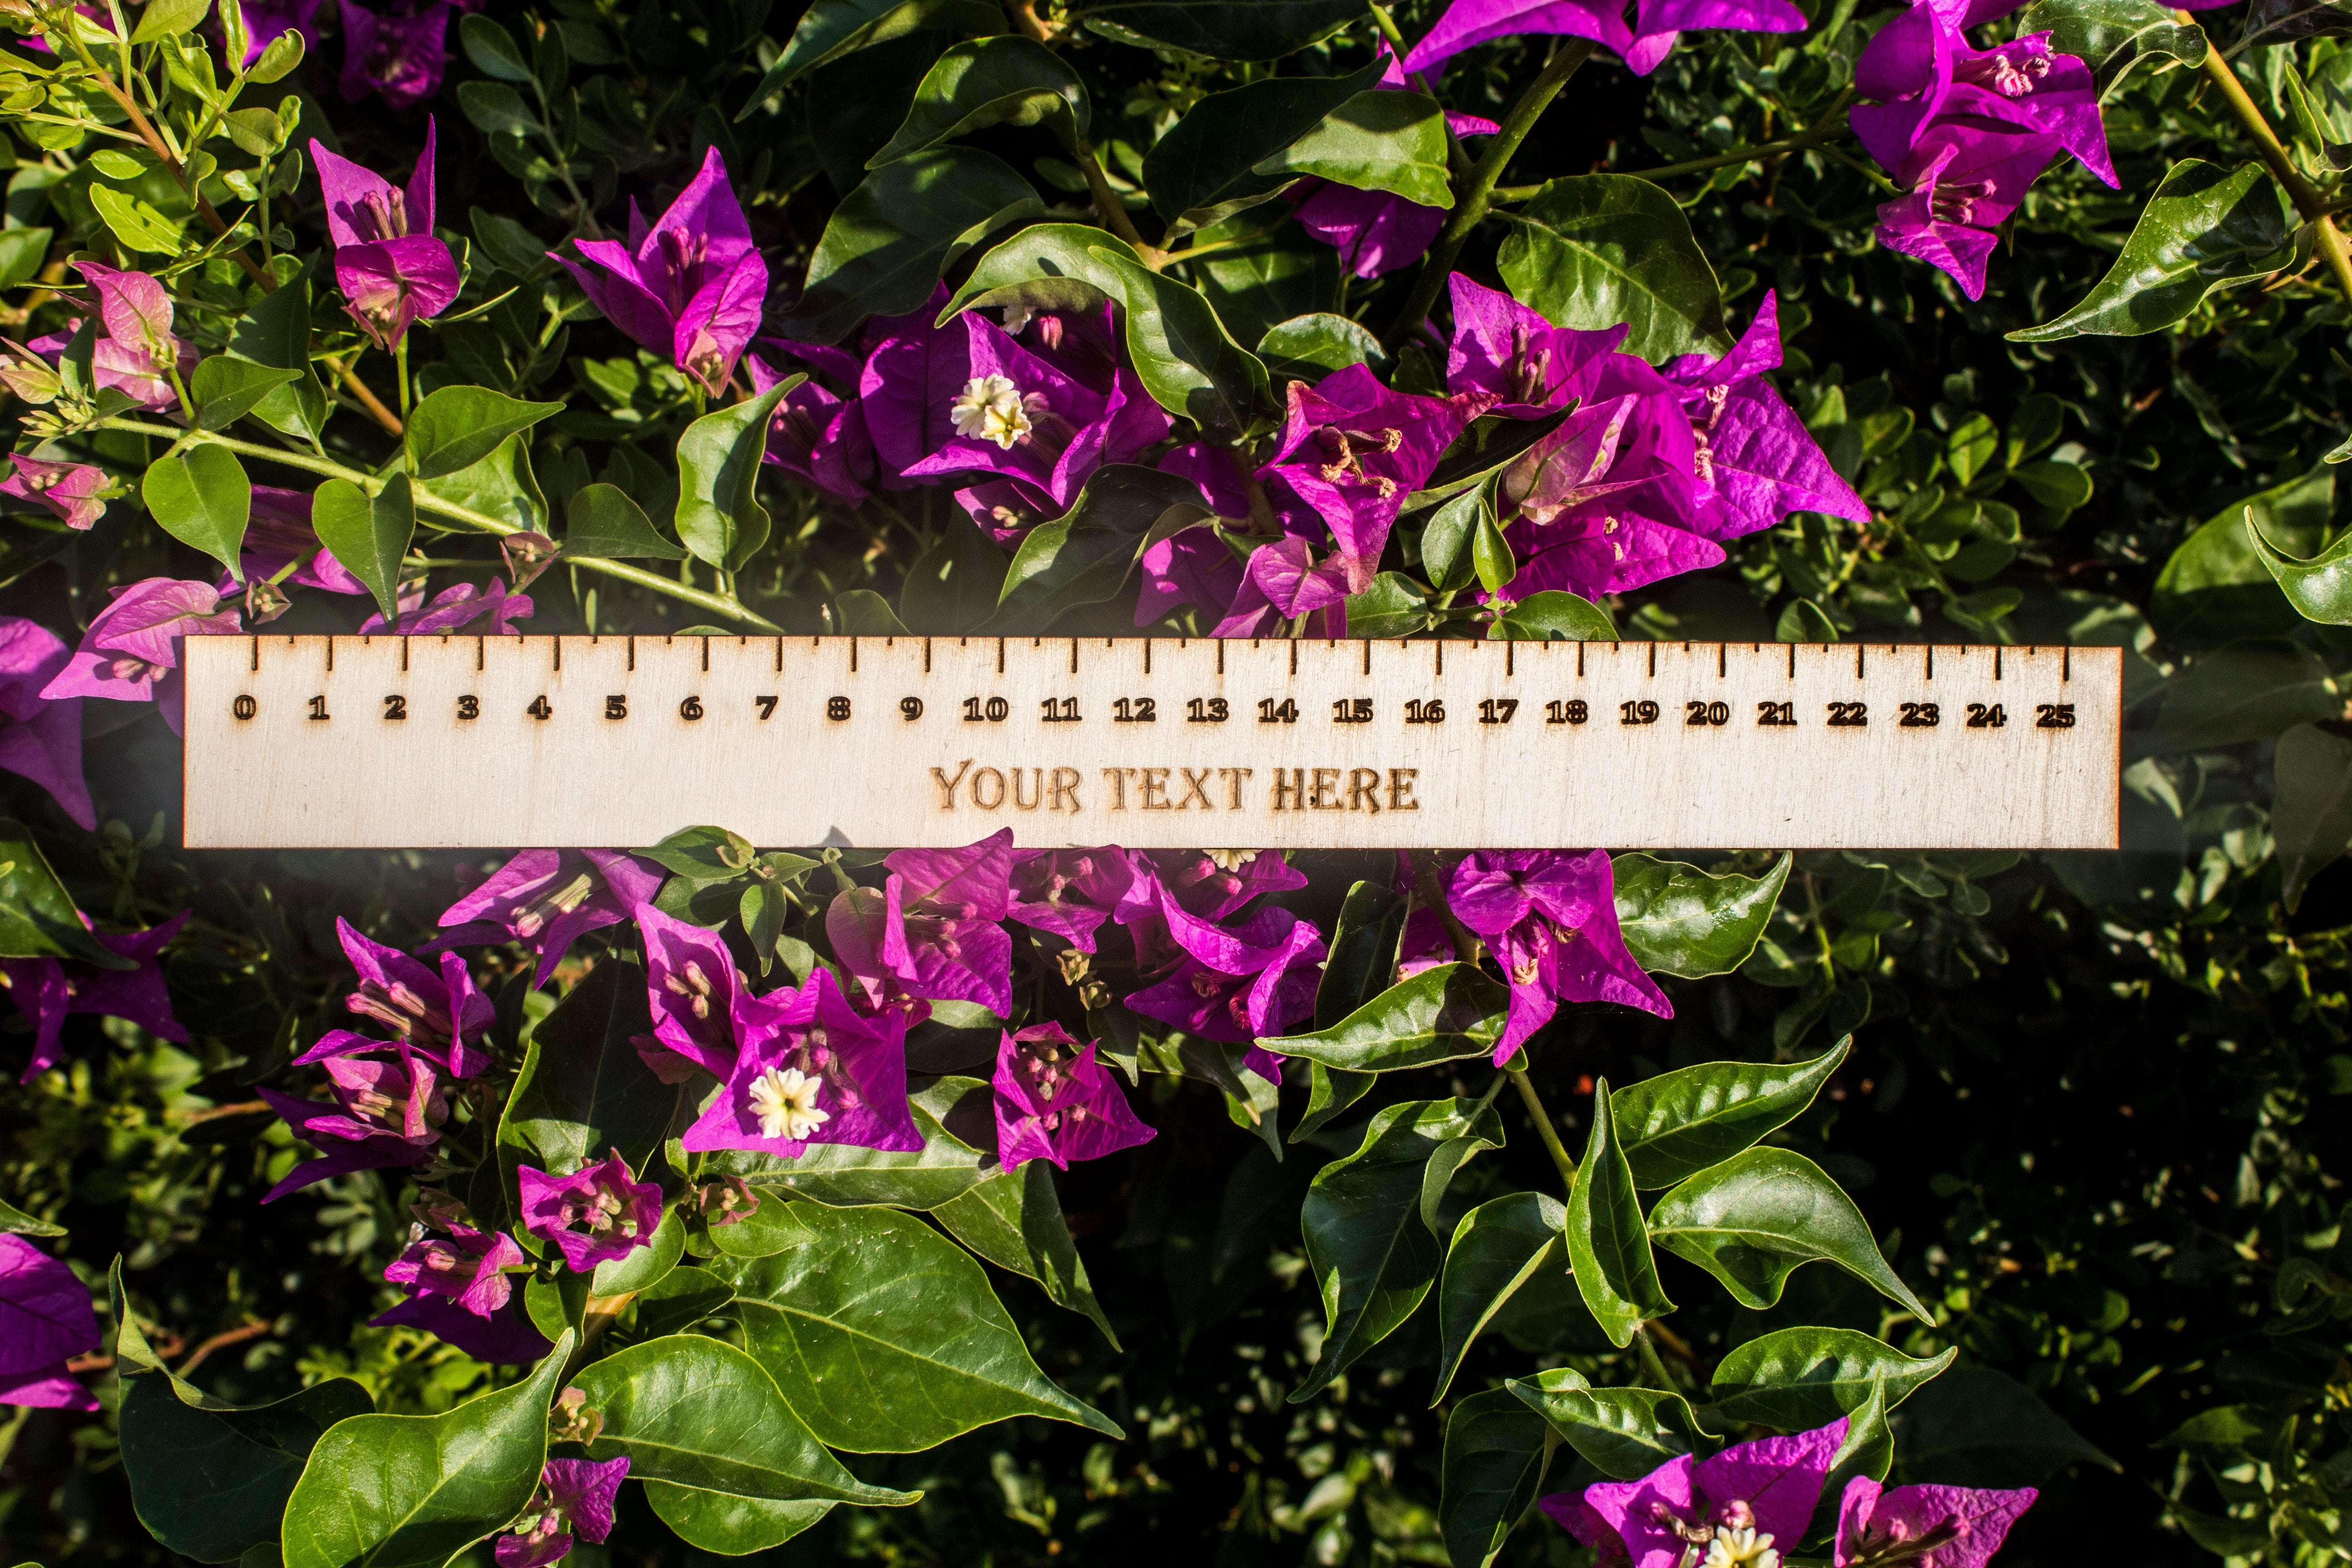 Customized Wooden Ruler | Personalized Engraved Wood Ruler | Custom School Supply for Kids - Wooderland